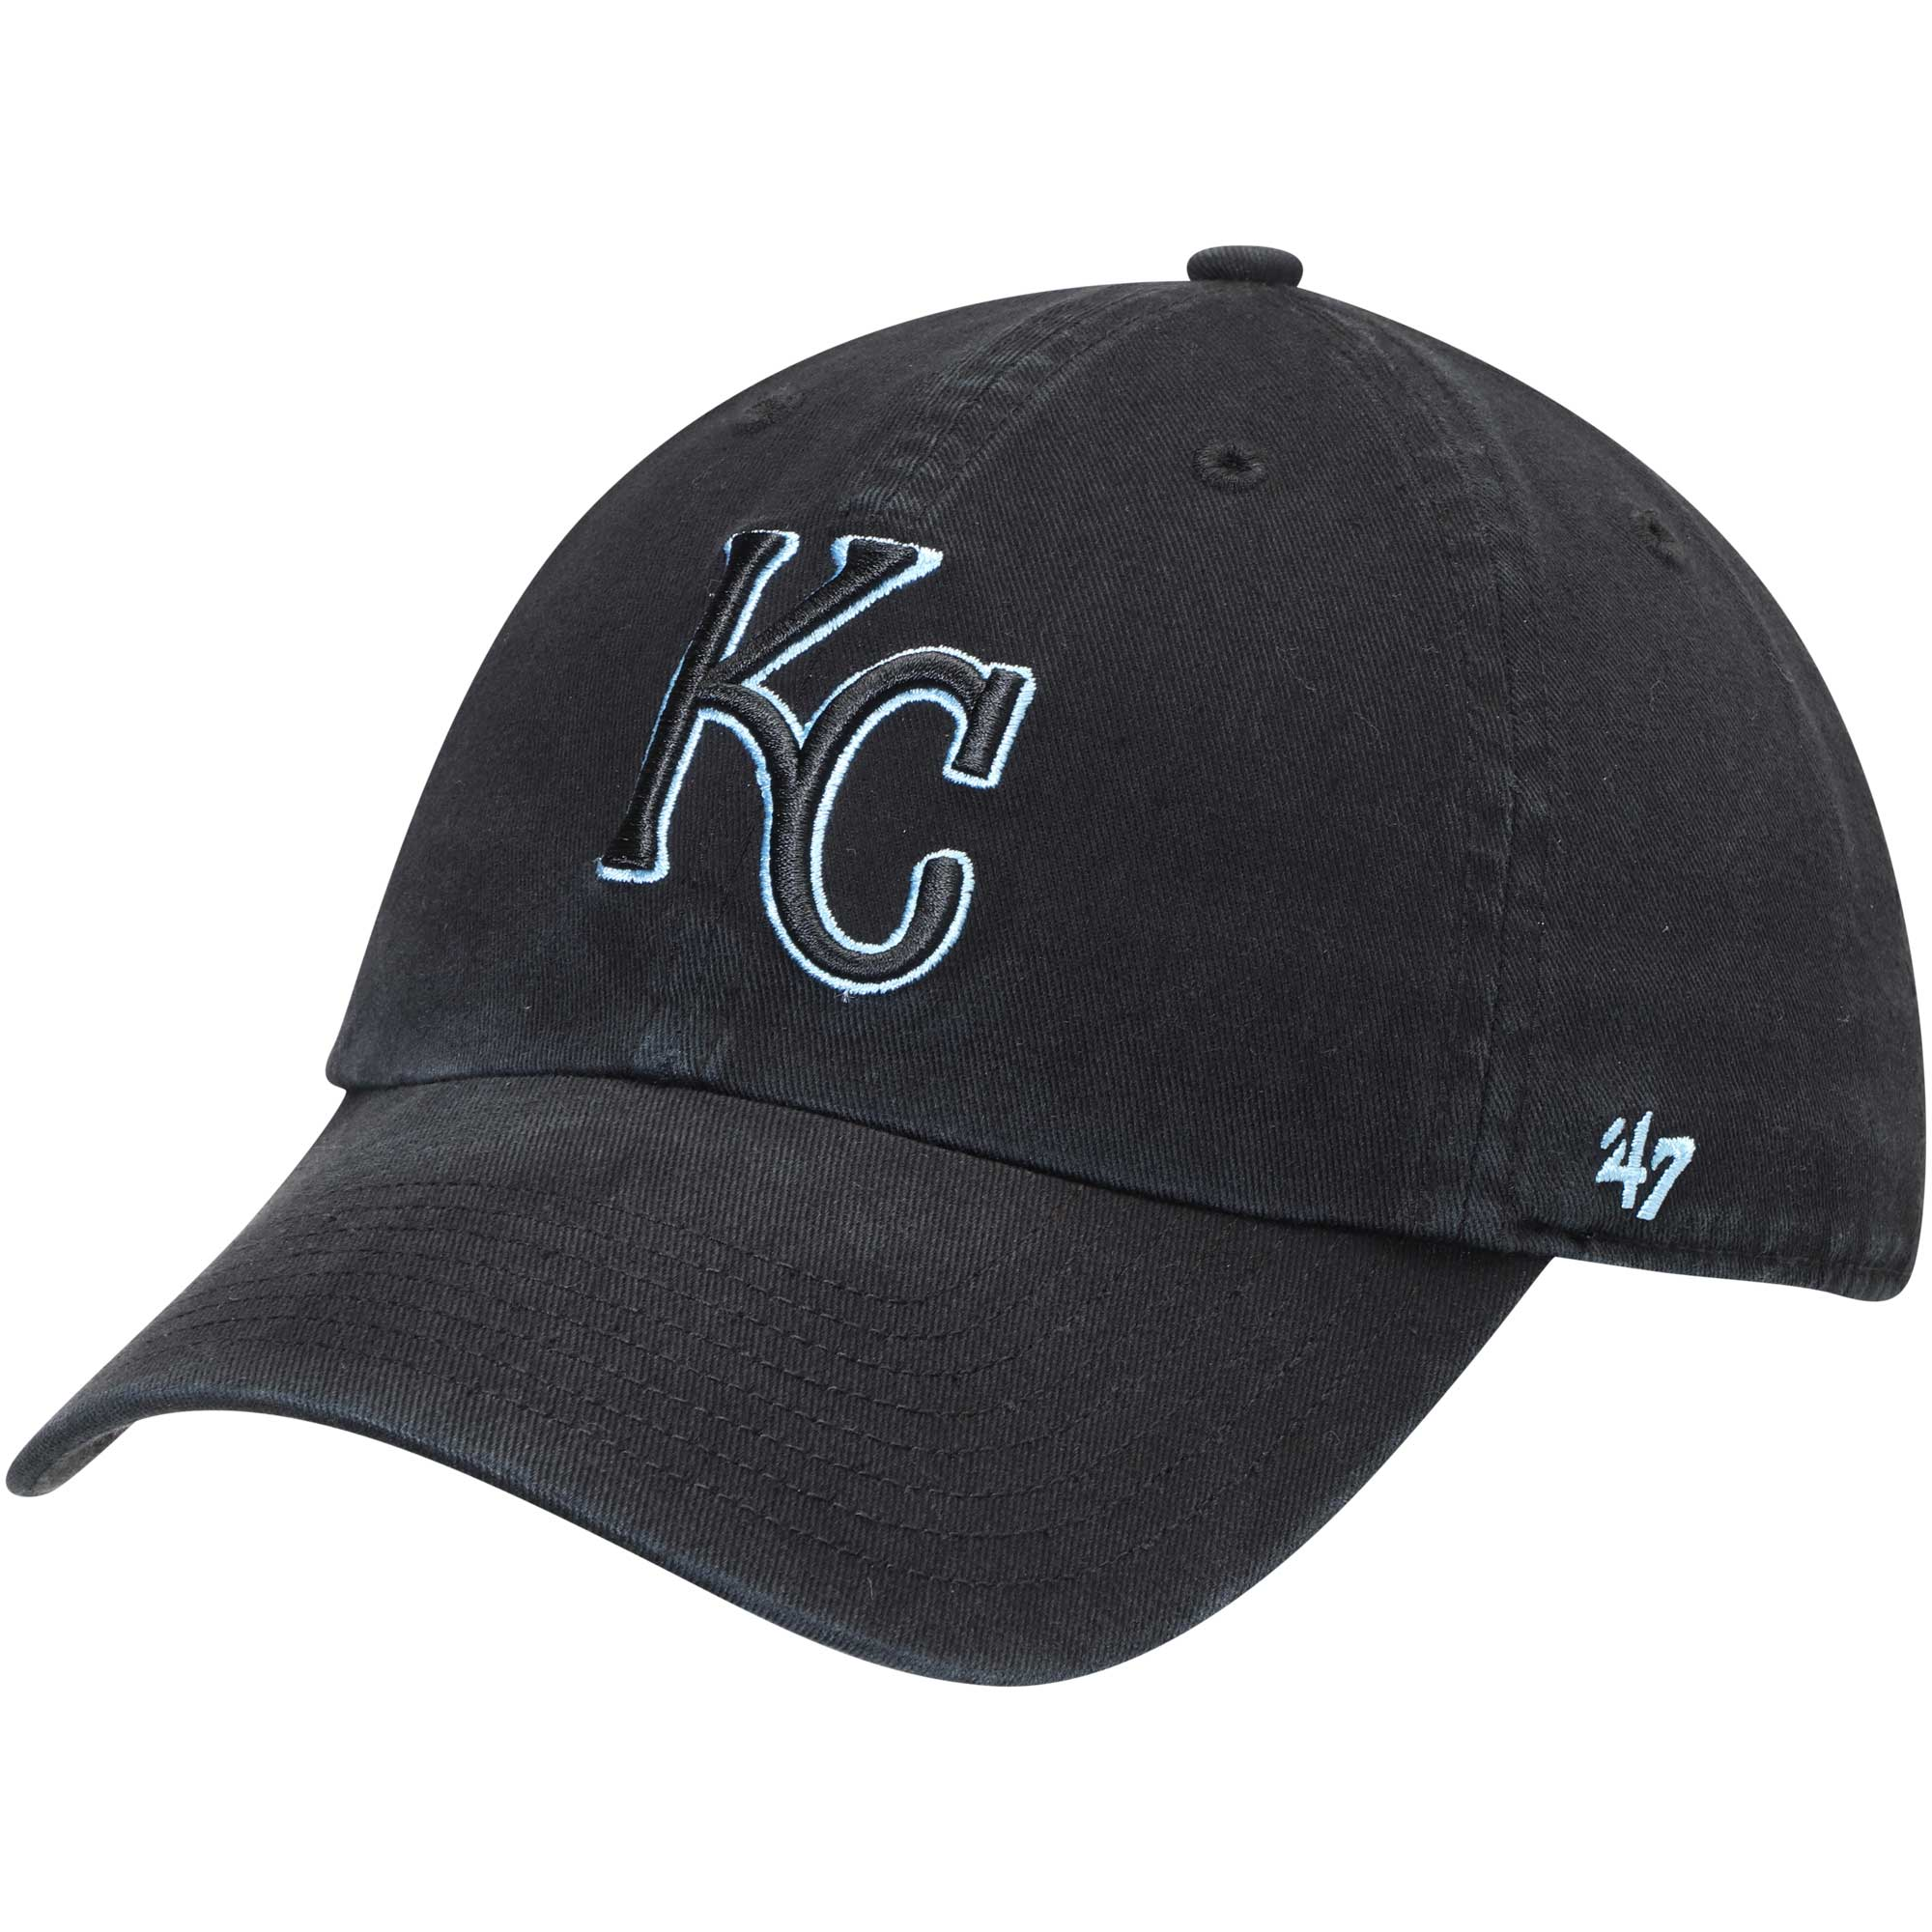 Kansas City Royals '47 Team Color Clean Up Adjustable Hat - Black - OSFA